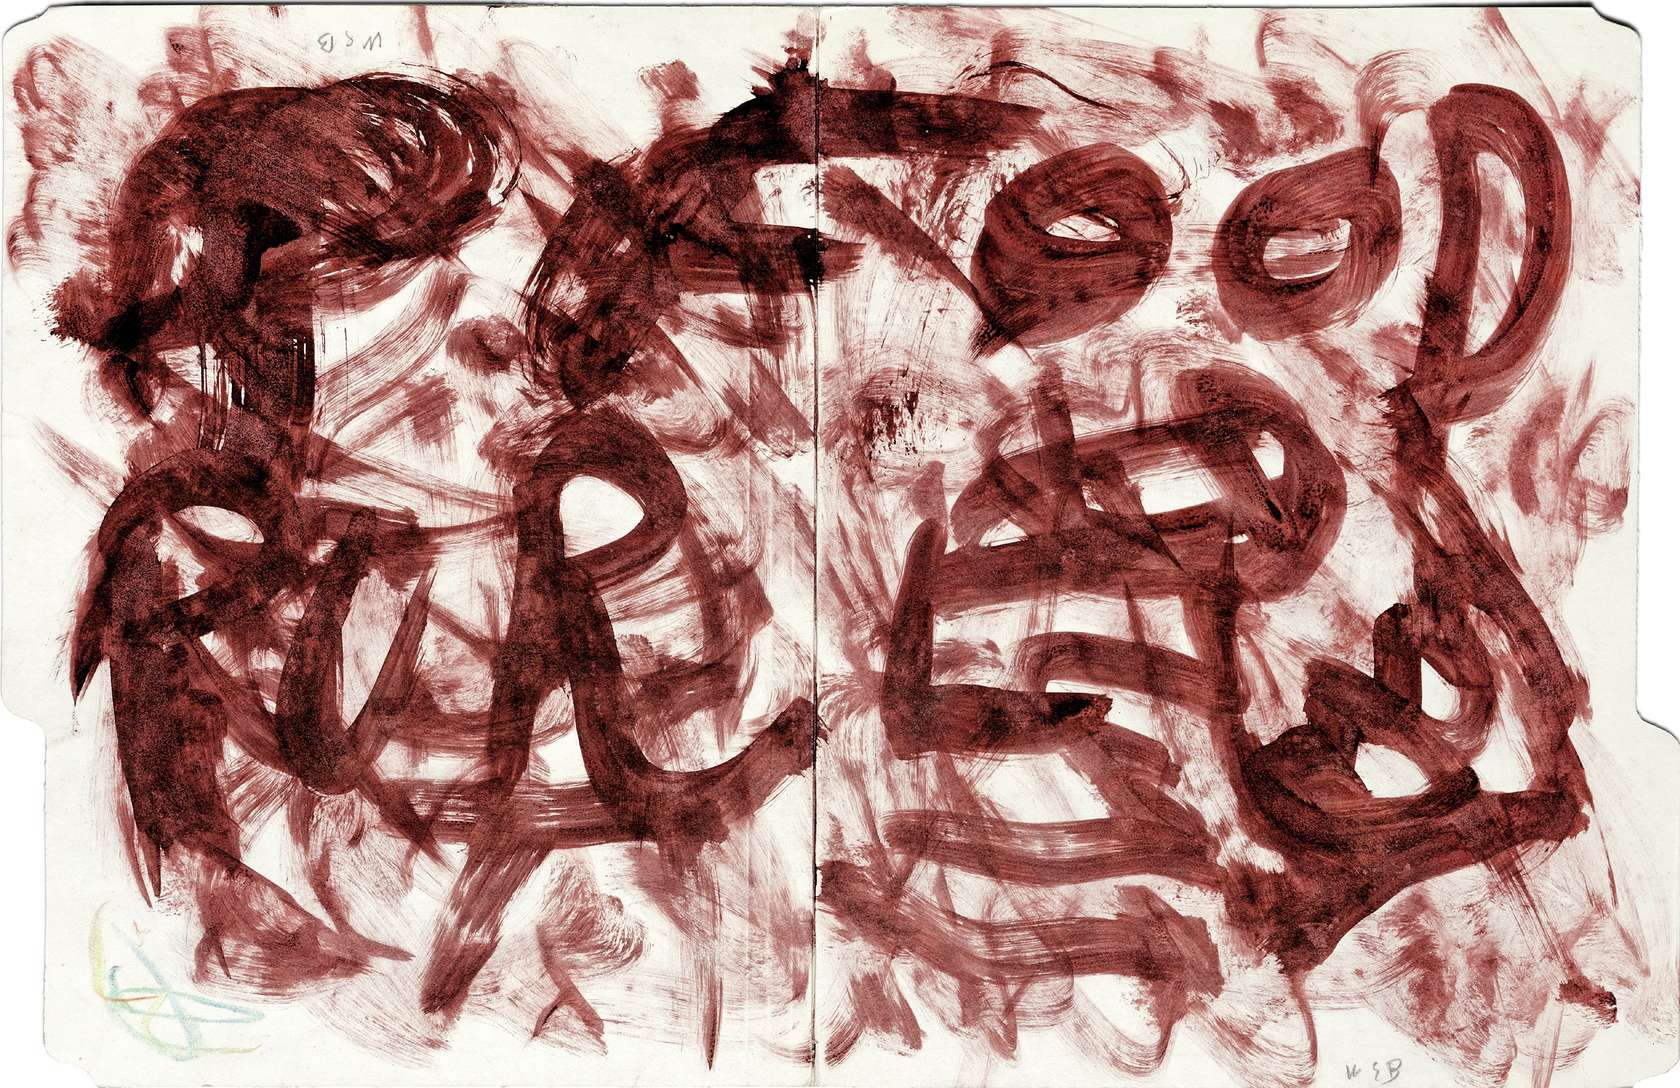 William S. Burroughs, Untitled, 1992 Encre sur chemise cartonnée (recto verso)30 × 47 cm / 11 6/8 × 18 1/2 in.